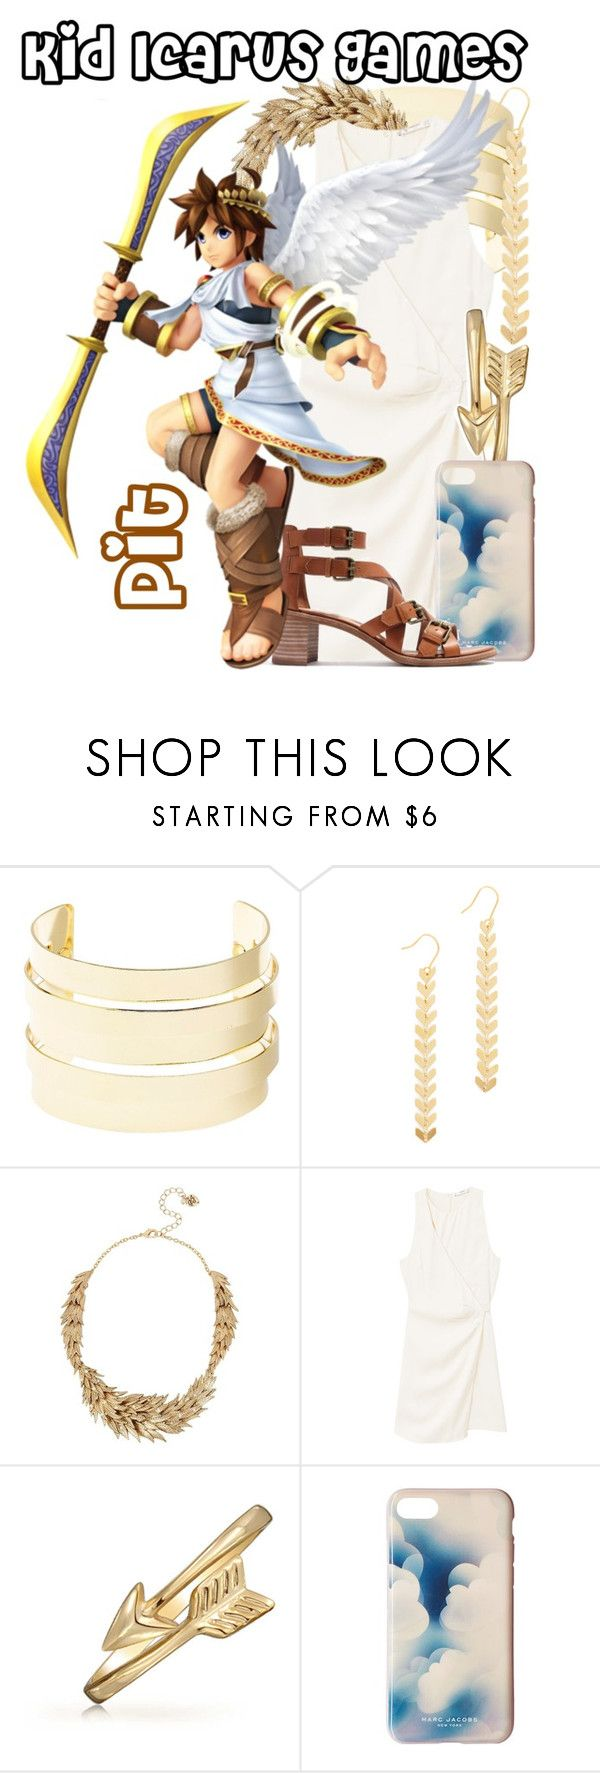 """Pit from the Kid Icarus Games (Dressed Down)"" by imanirine ❤ liked on Polyvore featuring Charlotte Russe, Cloverpost, Betsey Johnson, MANGO, Bling Jewelry, Marc Jacobs, Madewell and Nintendo"